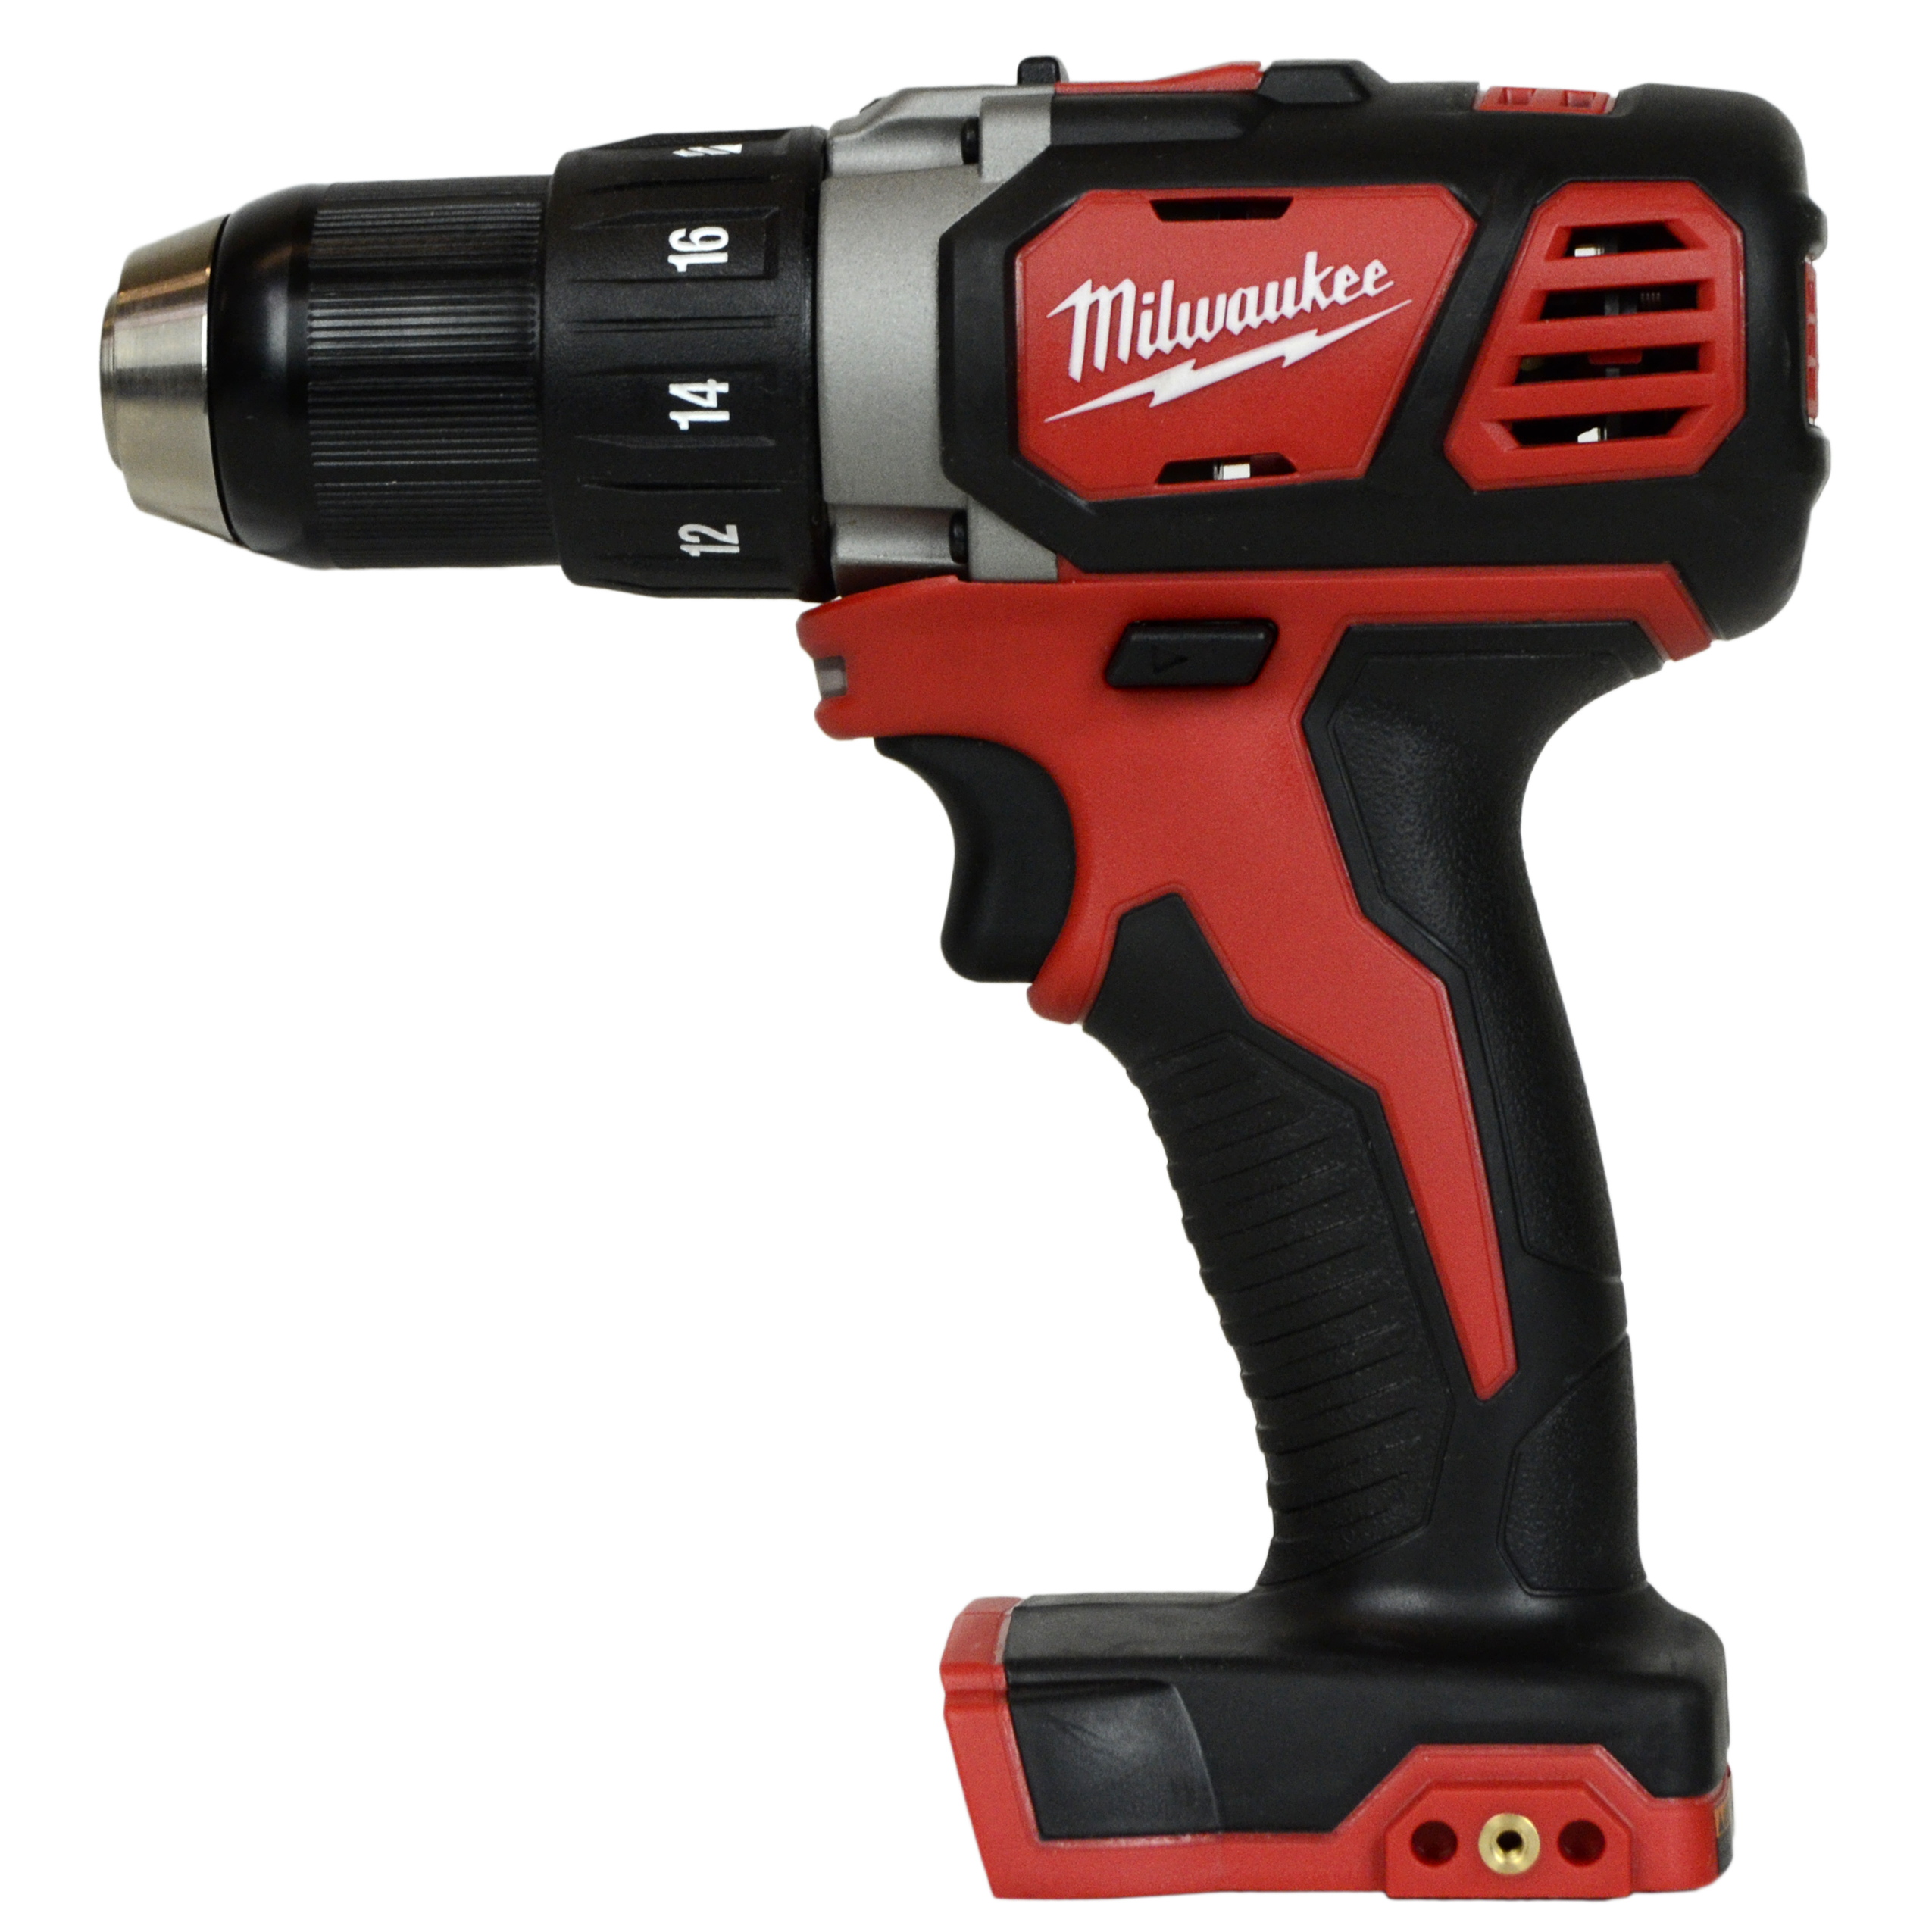 Milwaukee Tool 2606-20 18V Compact 1 2-in Drill Driver, TOOL ONLY by